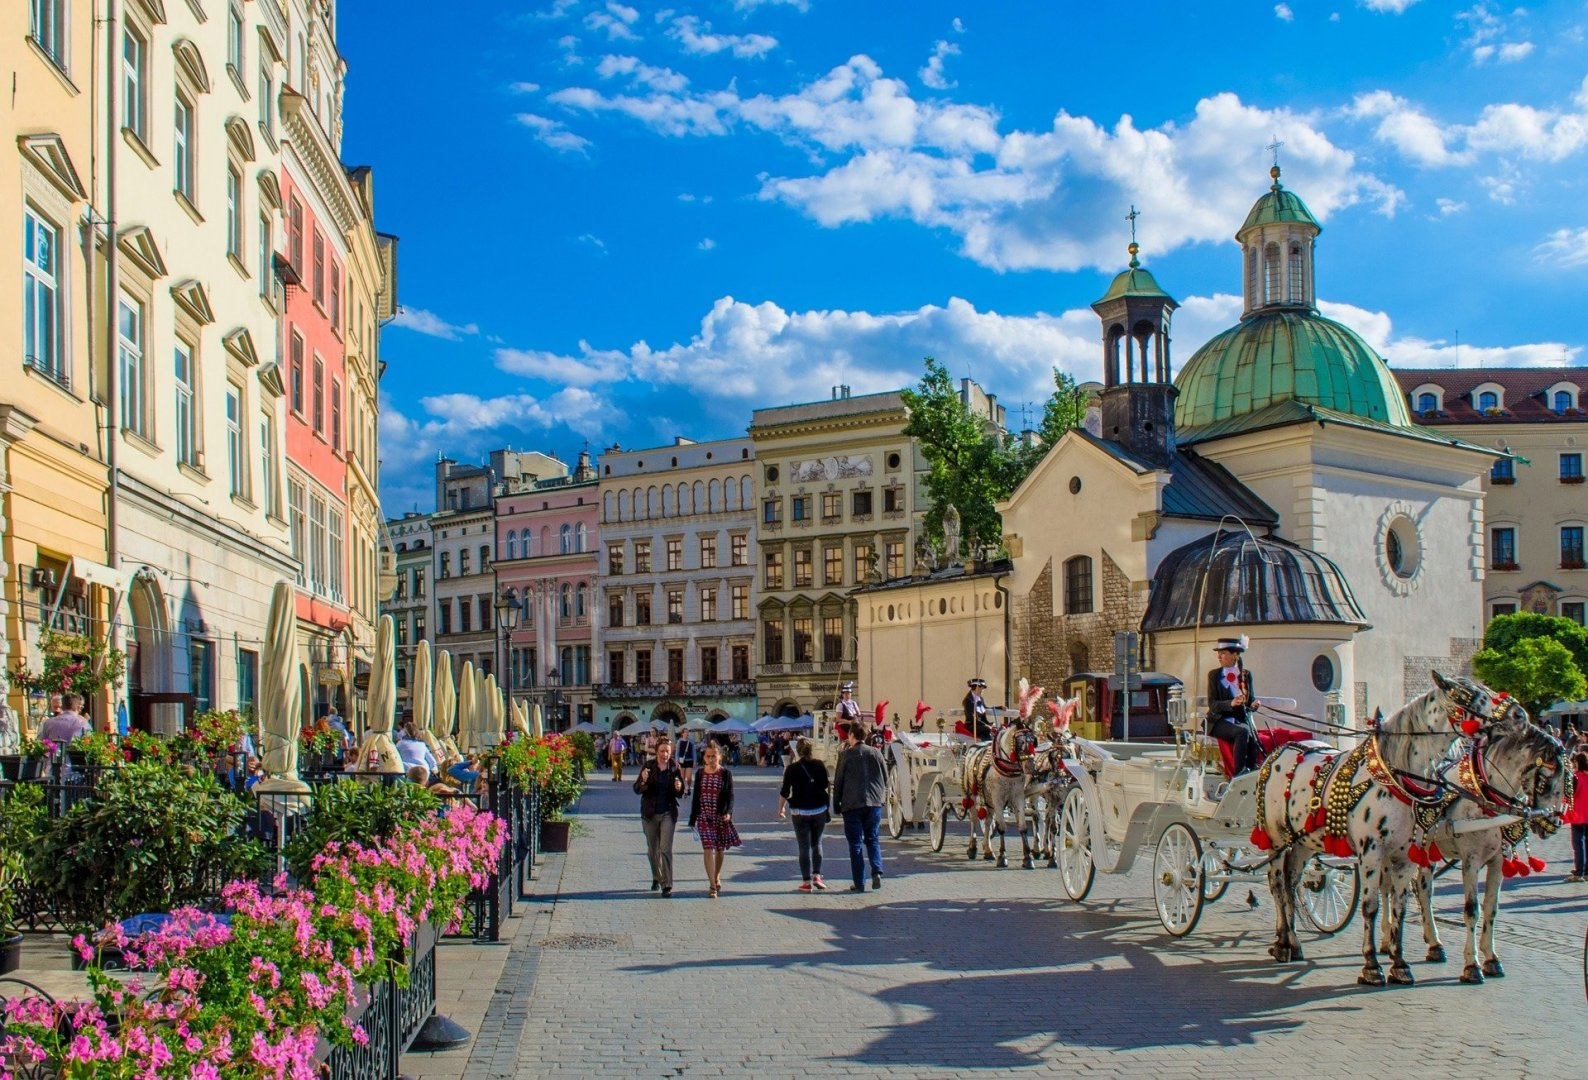 Krakow Old Town – Main Attractions